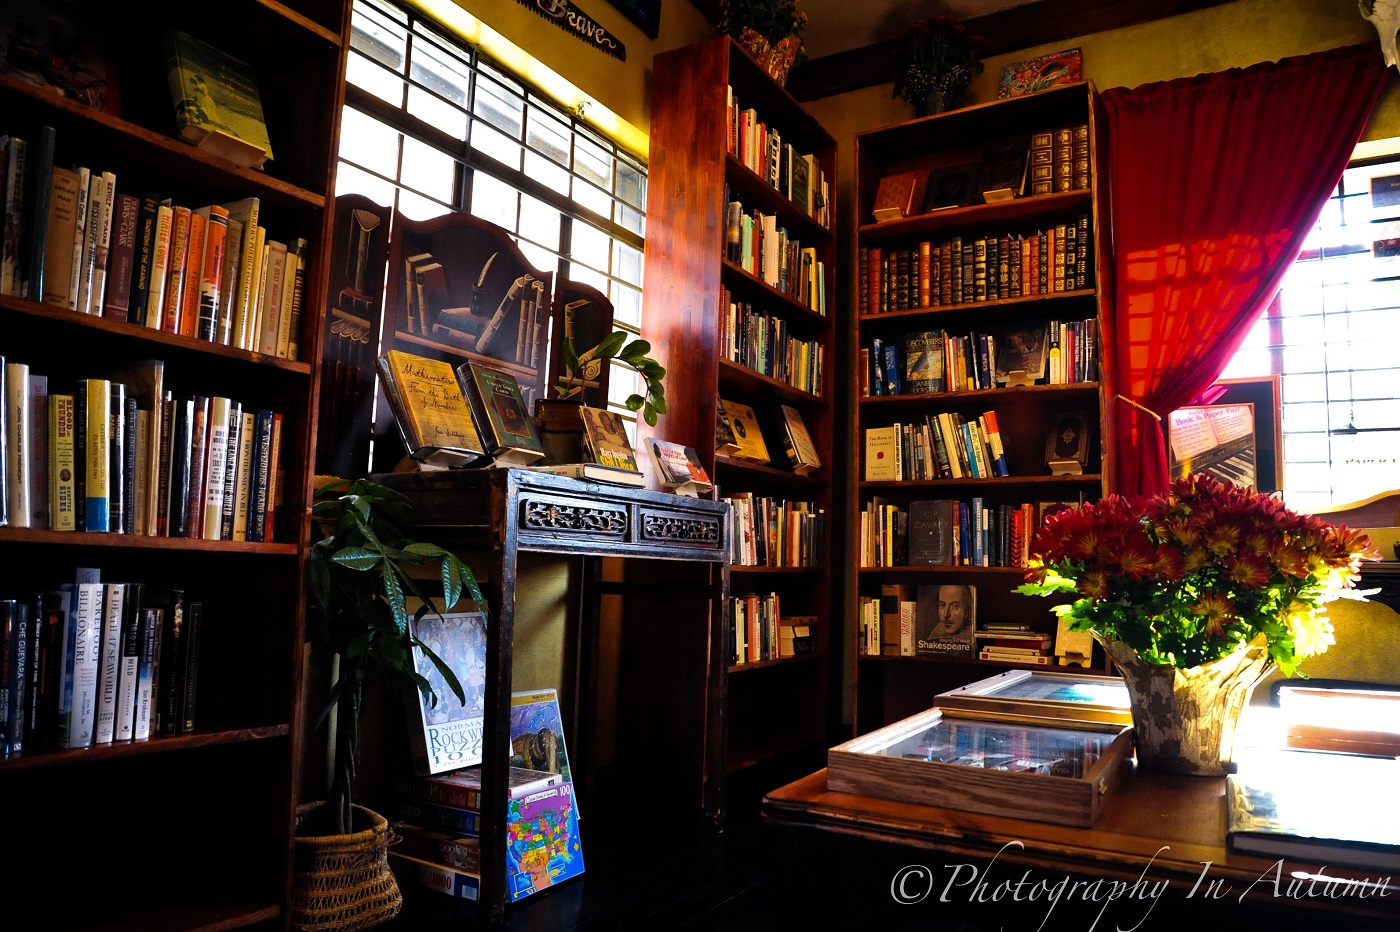 At 9th & 9th Book & Music Gallery, you can peruse the shelves and while away the hours steeped in books you wouldn't normally find elsewhere.